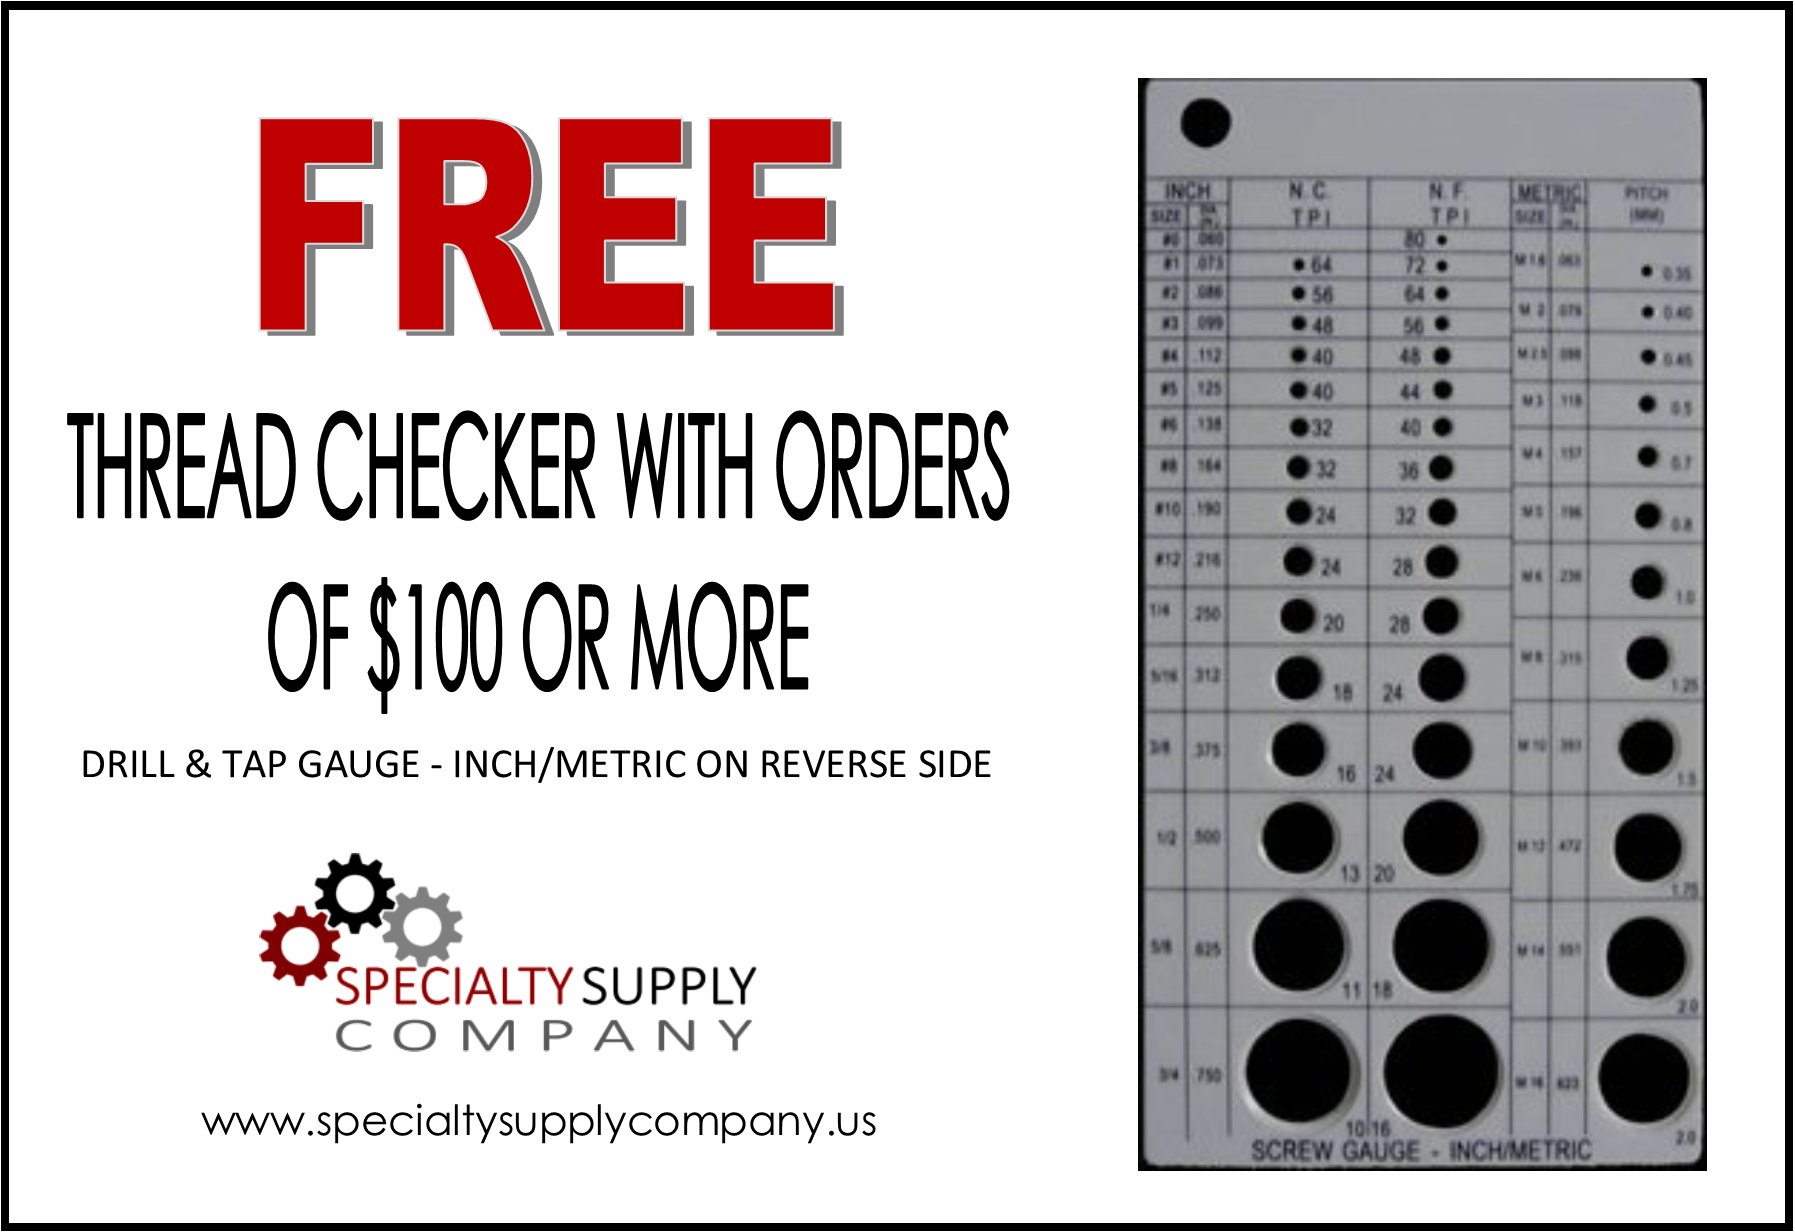 thread-checker-dirlls-metric-fractional-sizes-drill-size-specialty-supply-company